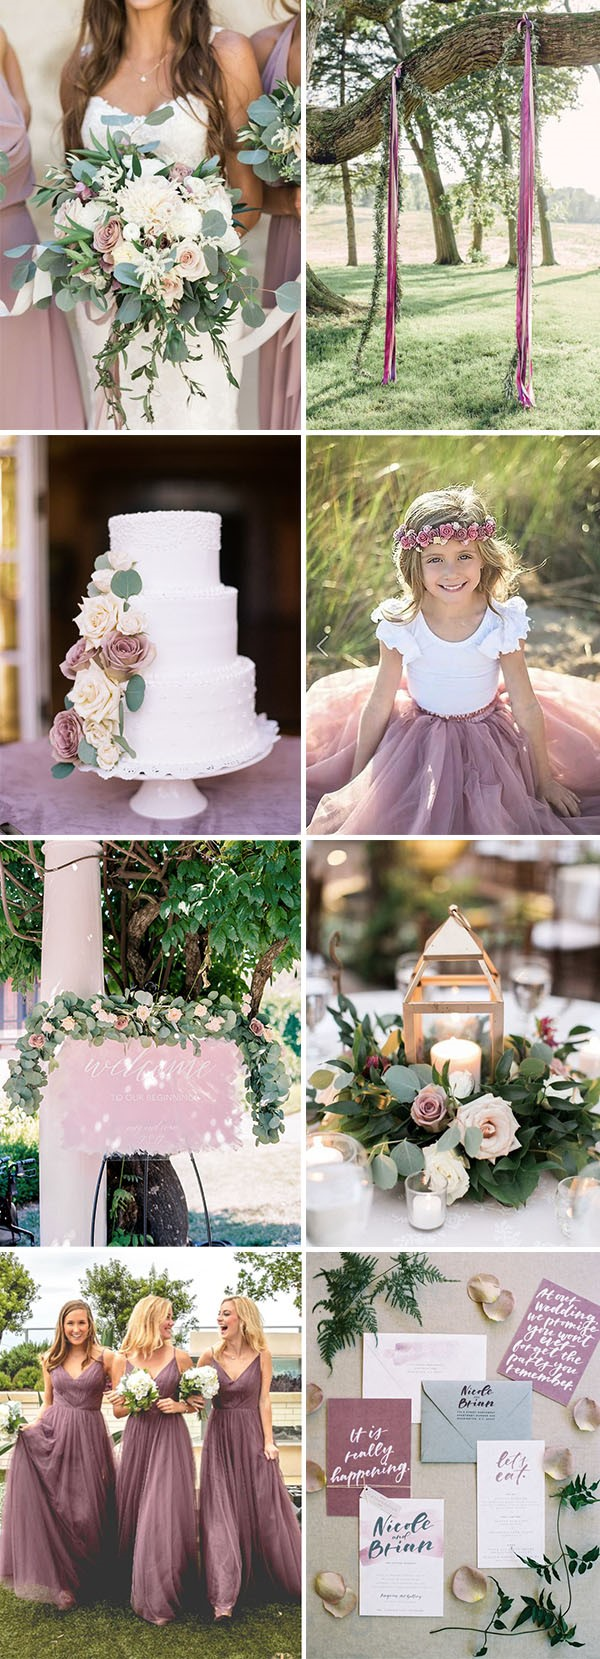 Summer Wedding Colors.Good Wedding Colors For Summer